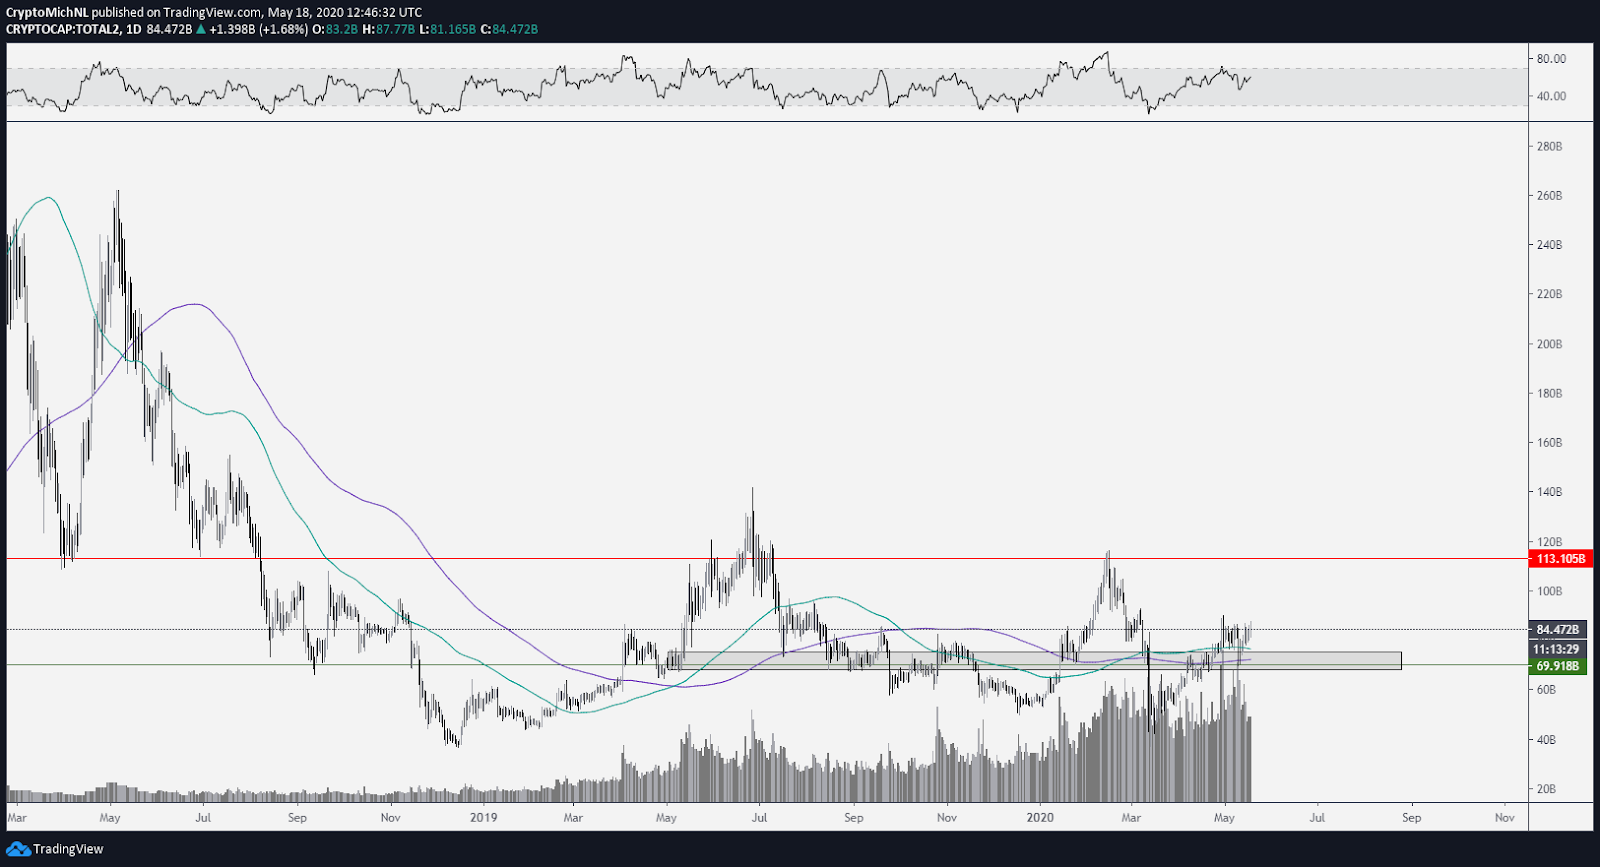 Total altcoin market capitalization cryptocurrency 1-day chart. Source: TradingView